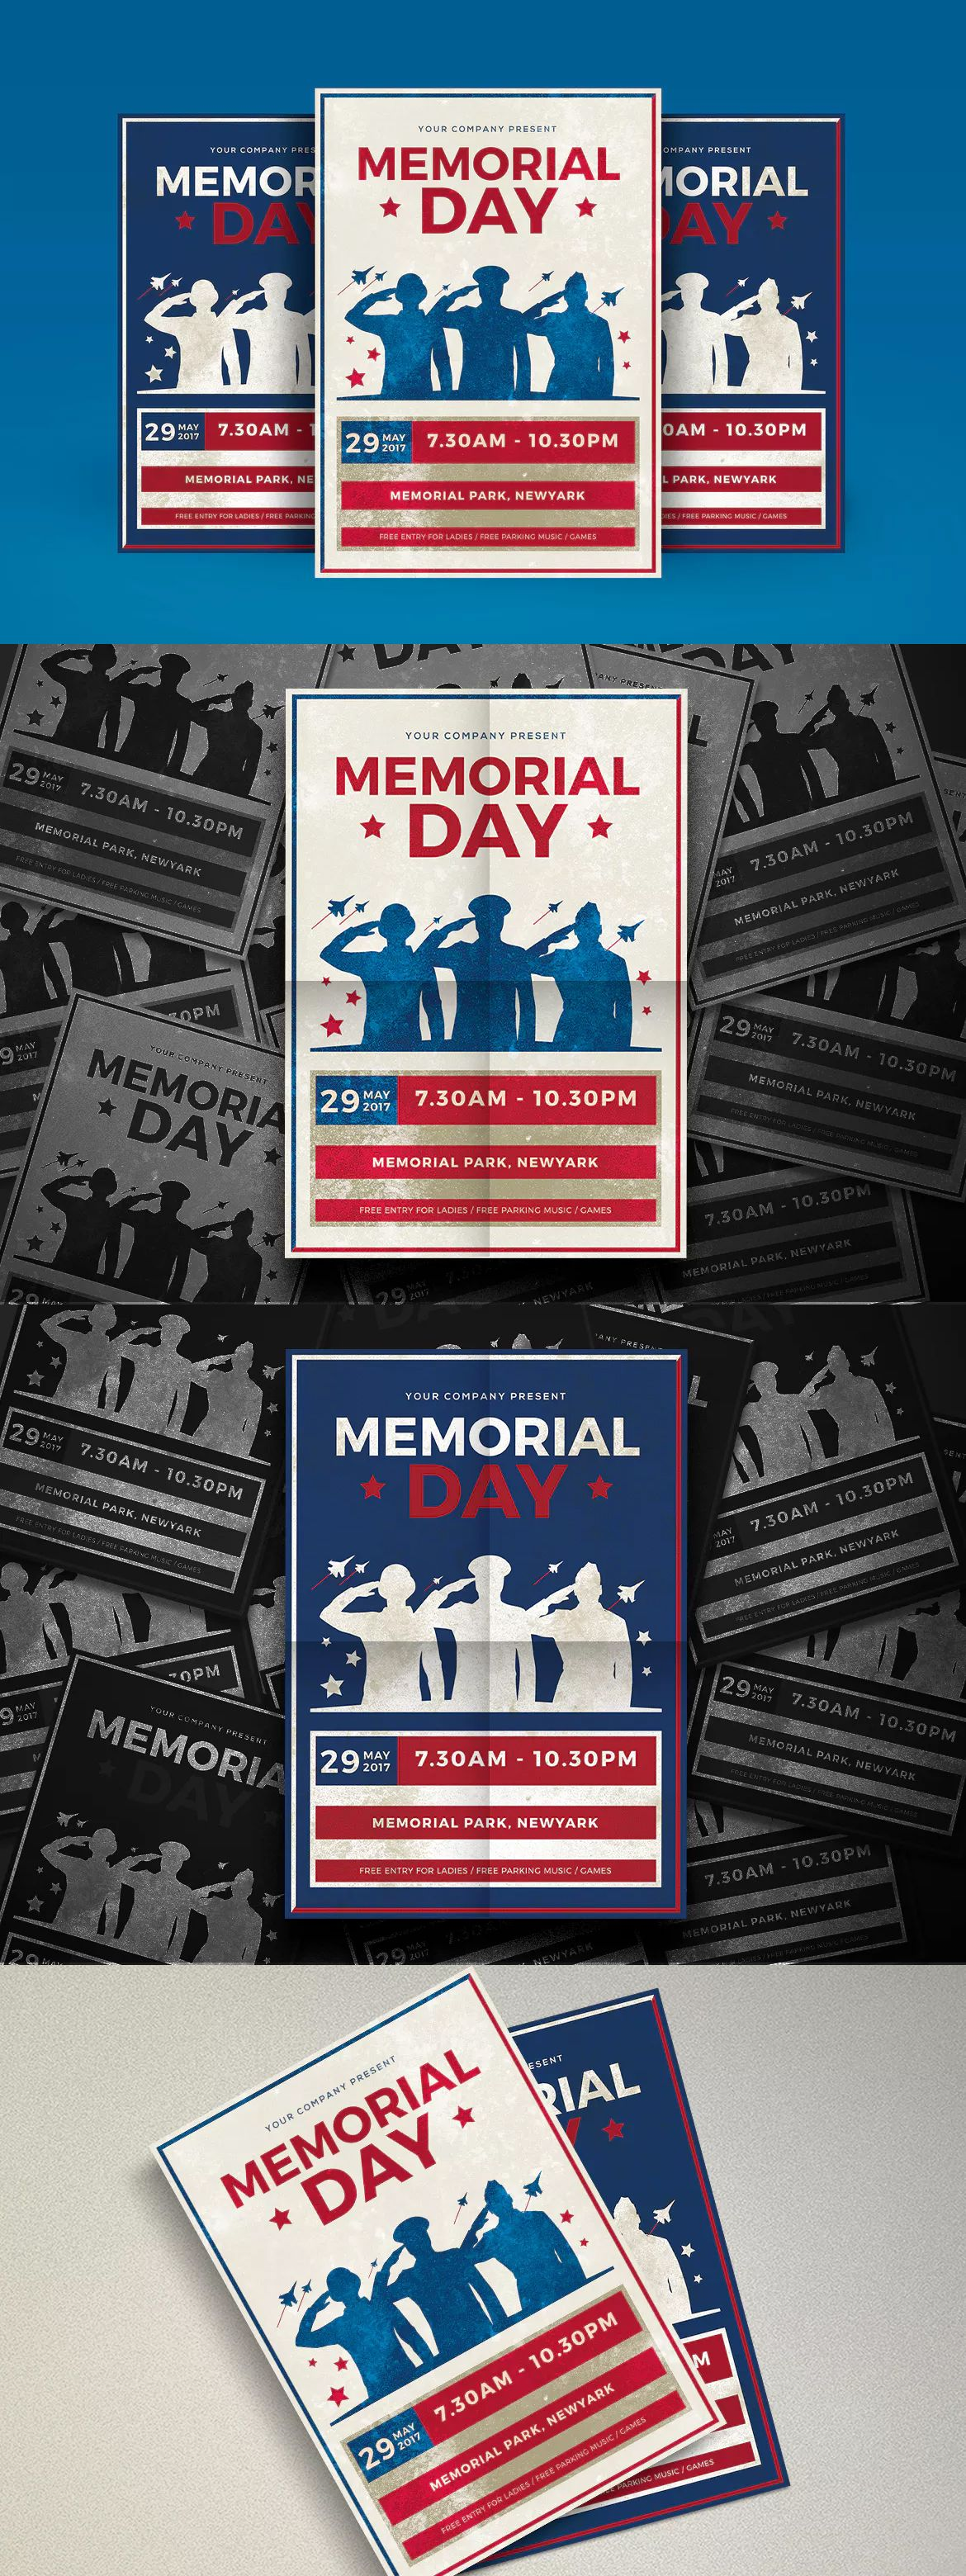 Modern Memorial Day Templates Ai Psd  Flyer Templates